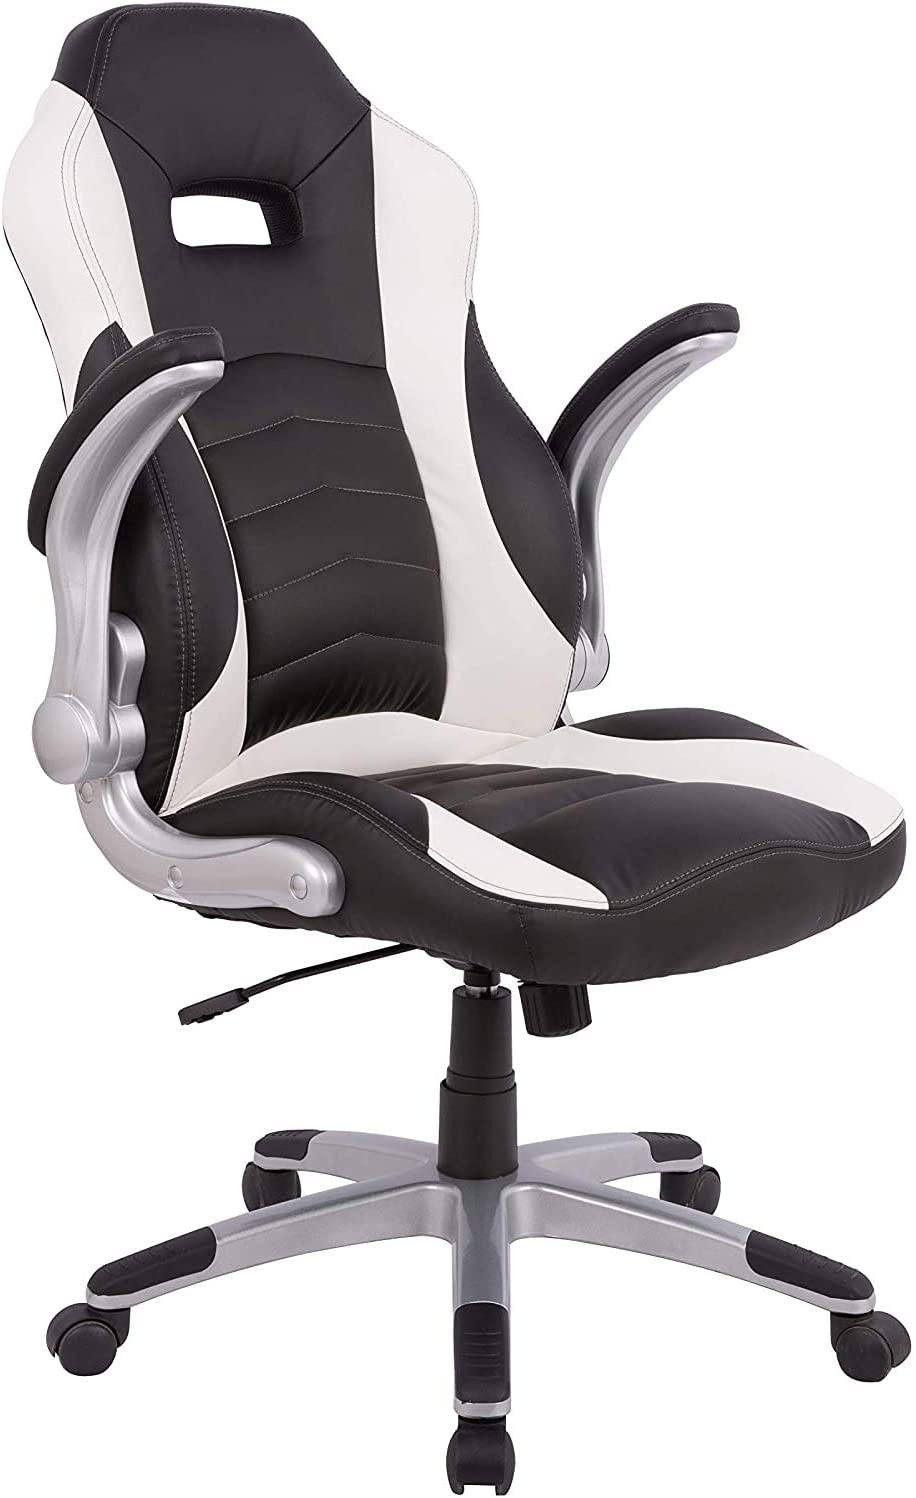 Gaming Chair Racing Style High-Back PU Leather Office Chair with  Adjustable Height Ergonomic and Sturdy Design (Black)